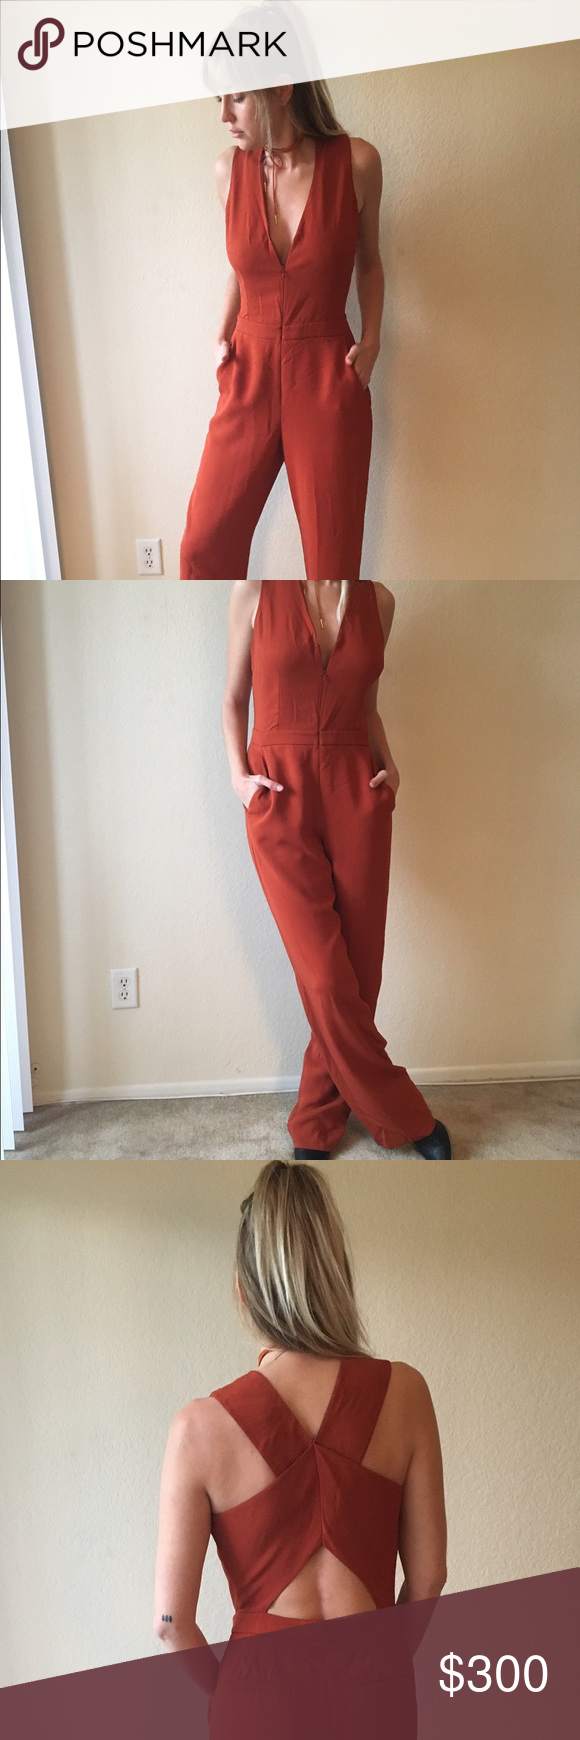 2536f8ffb988 A.L.C. Luree Jumpsuit Gorgeous burnt orange color. Deep V neckline with  zipper. Wide straps crisscross at Cutout back. Wide legs fall from hip.